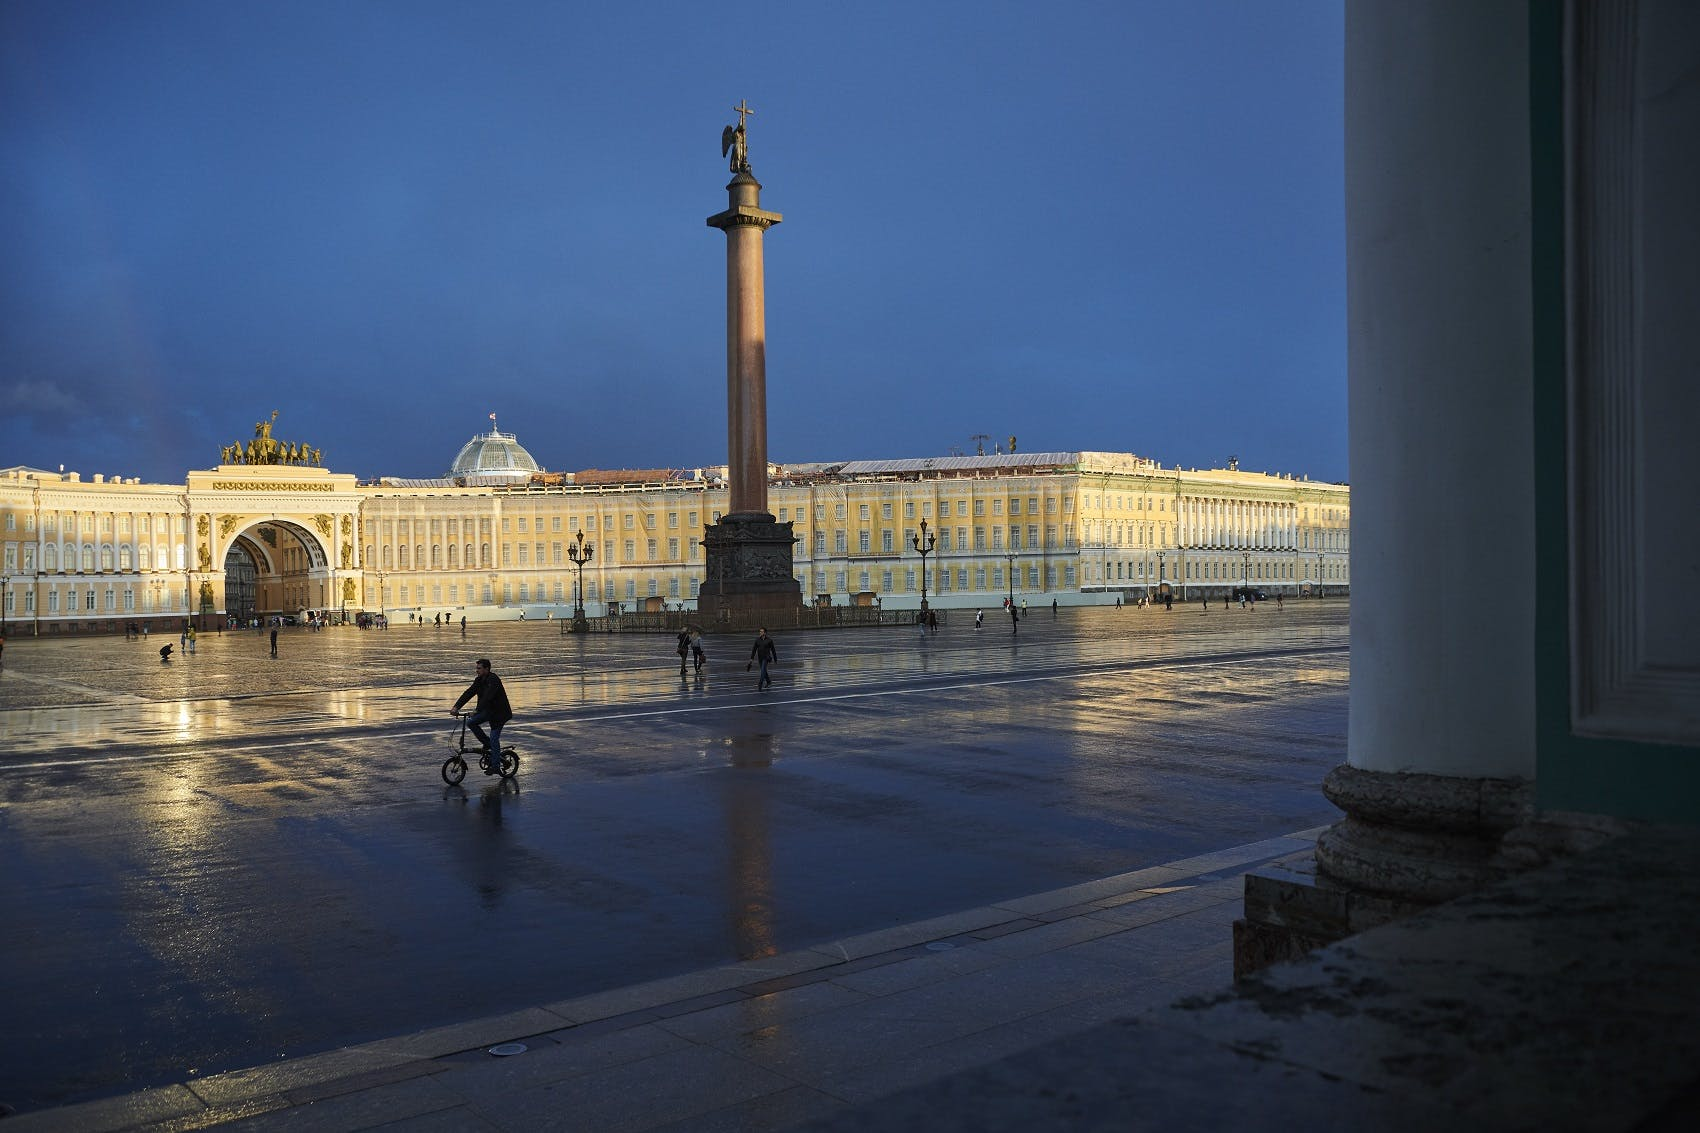 St Petersburg by Steve McCurry